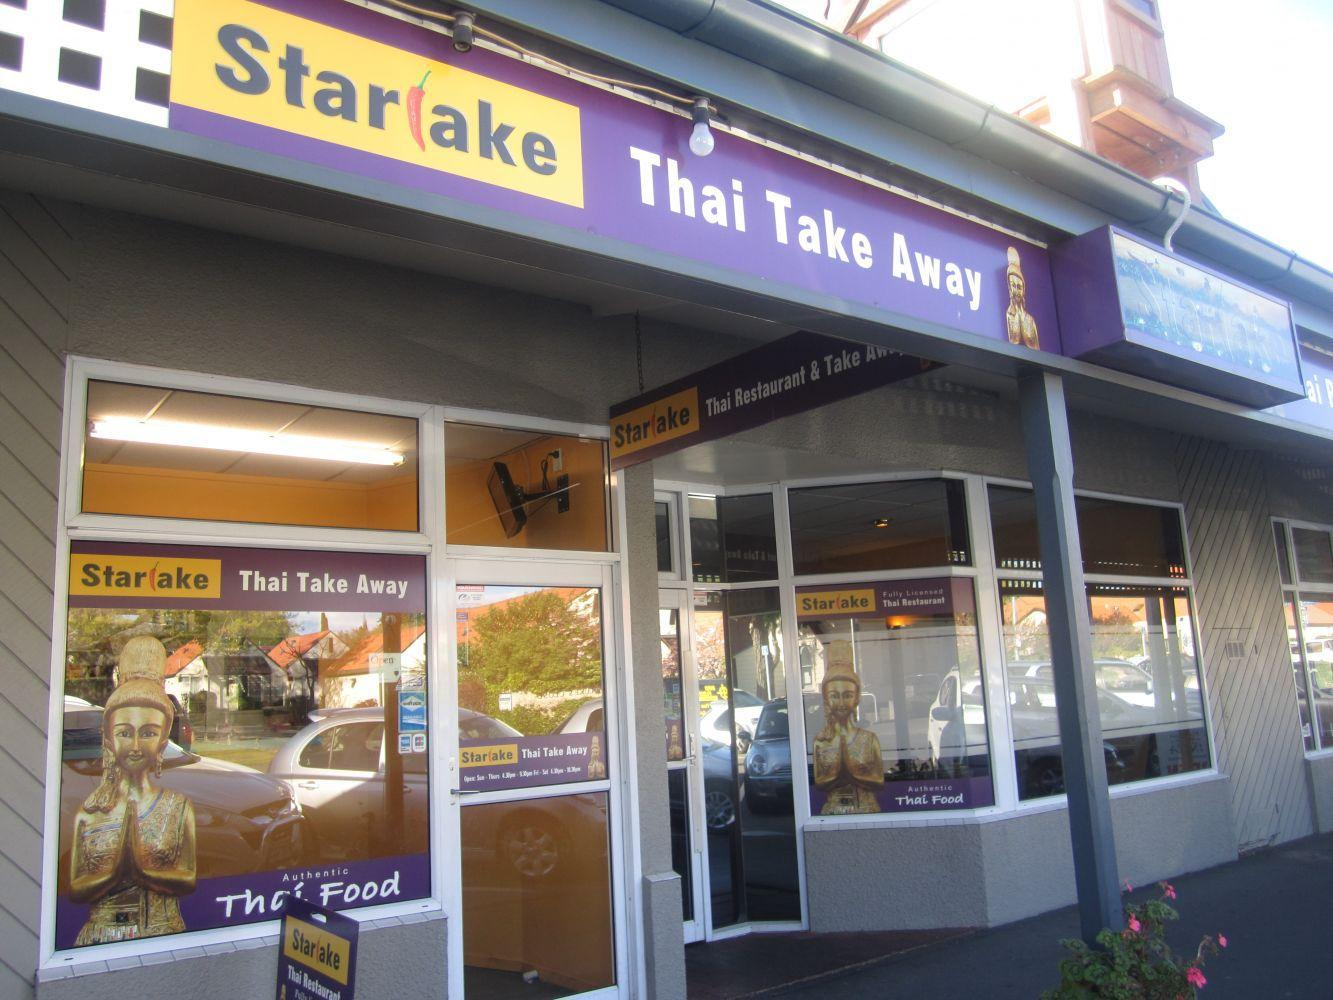 Starlake Thai Restaurant & Takeaway